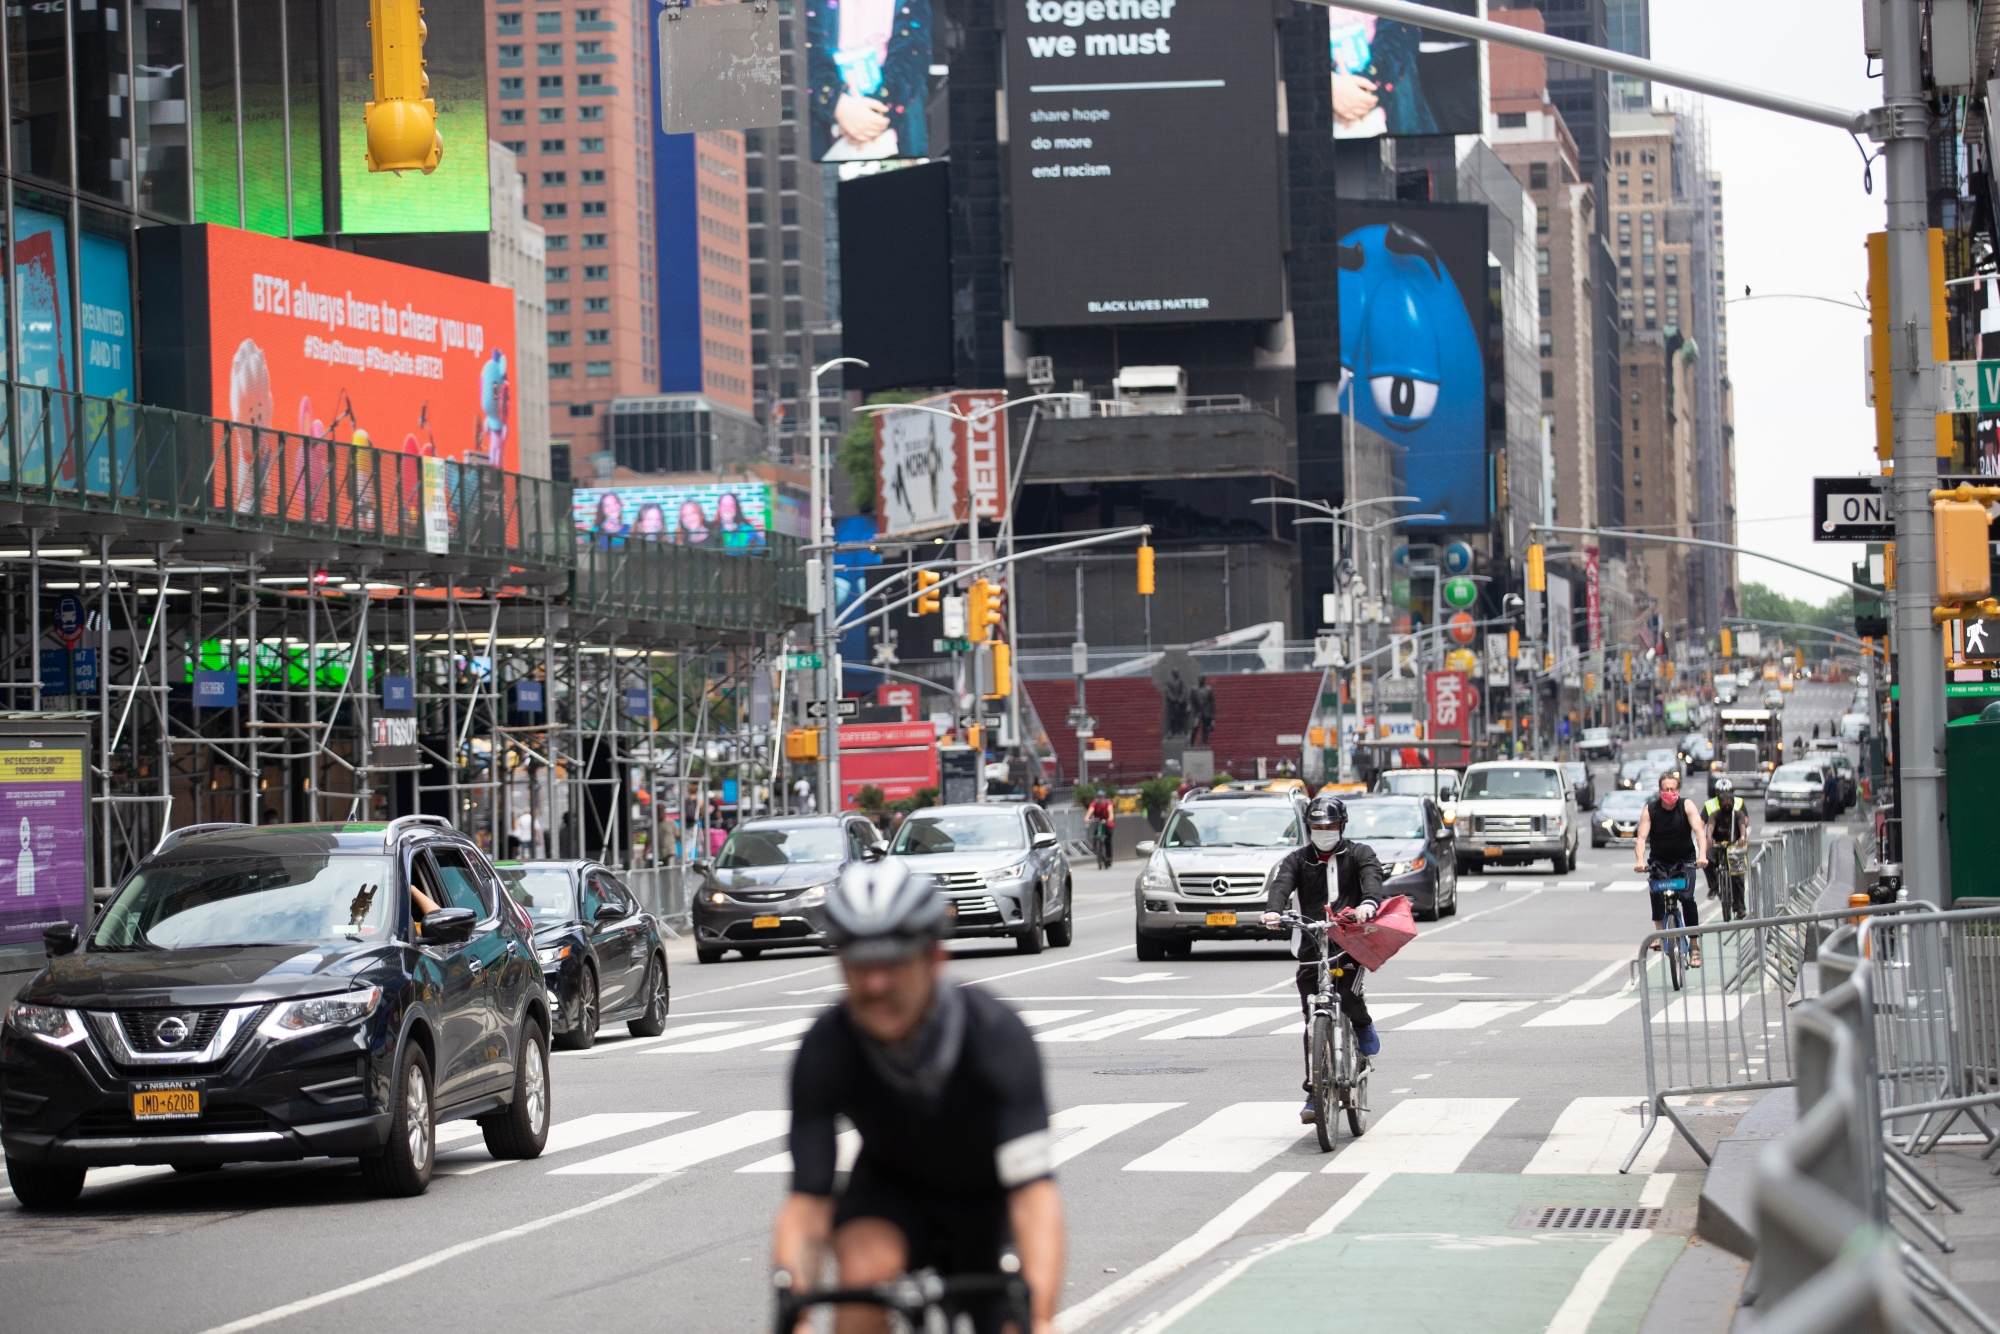 New York Streets Get a Little More Congested As City Enters Phase 1